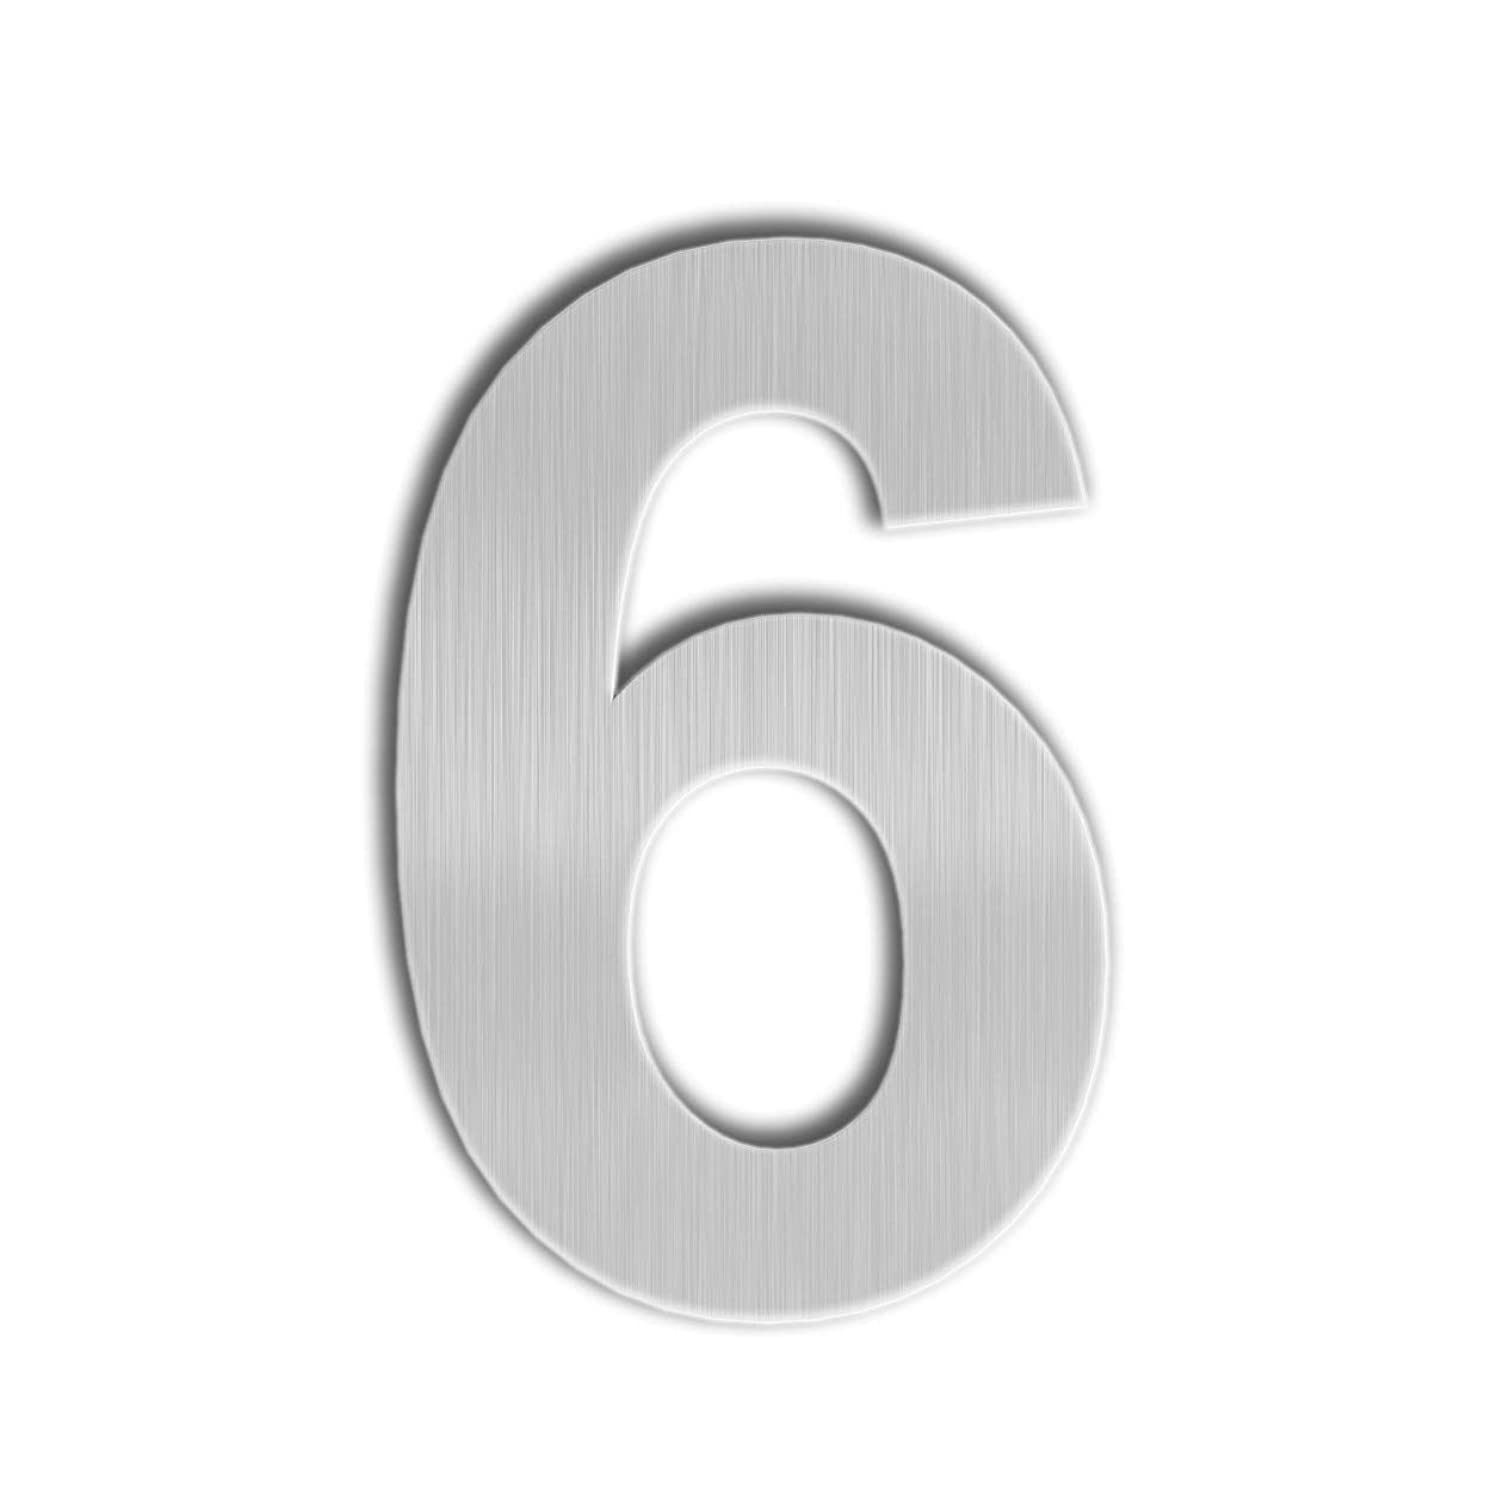 QT Modern House Number - 6 Inch, Brushed Stainless Steel (Number 6/9 Six/Nine), Floating Appearance, Easy to Install and Made of Solid 304 Stainless Steel